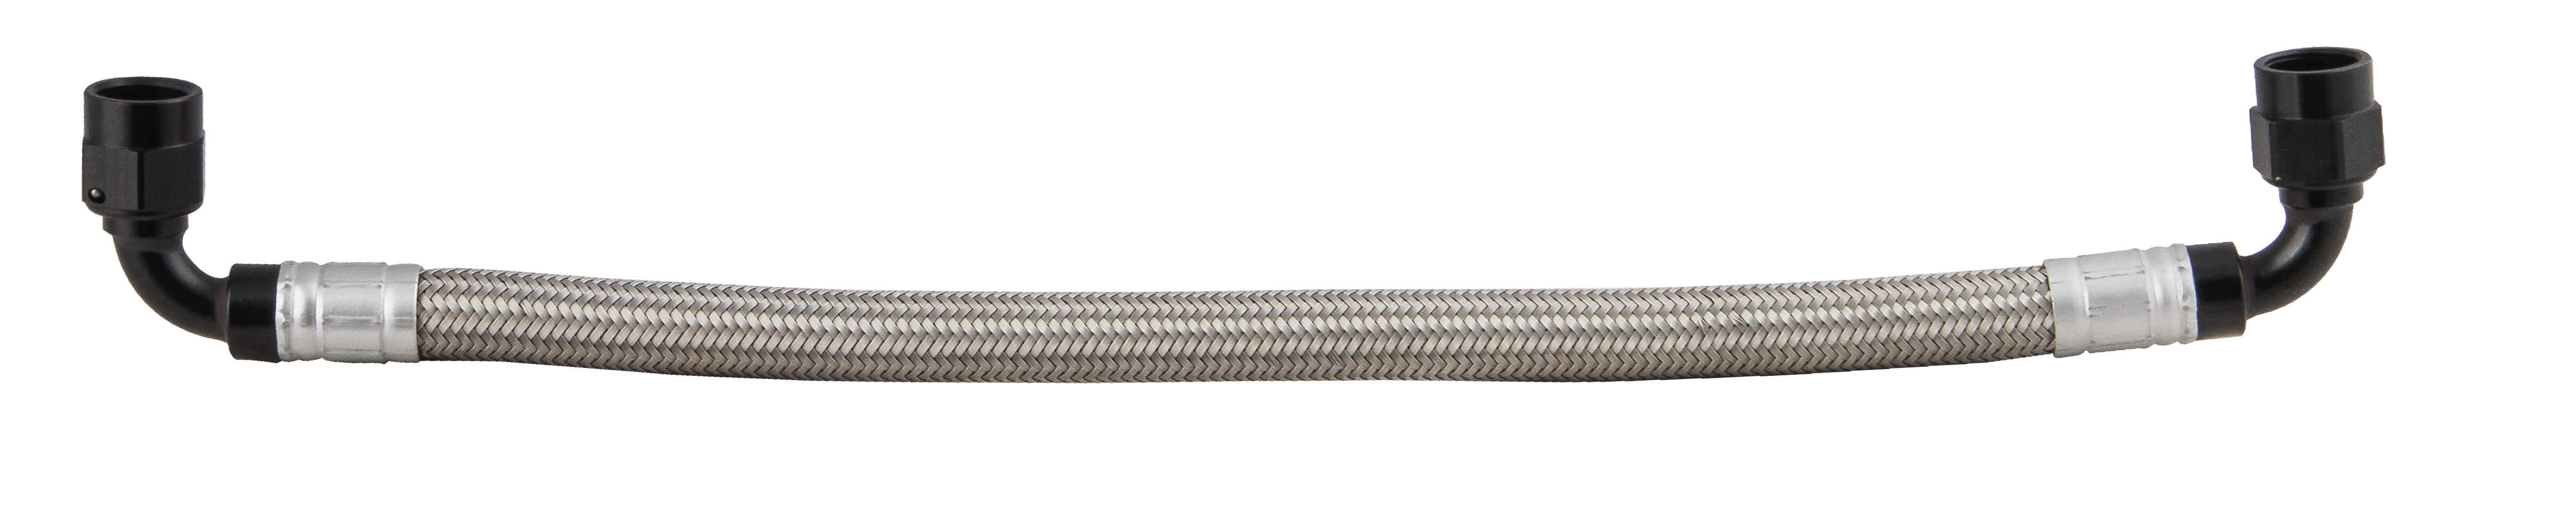 Earls GM LS Fuel Rail Cross-Over Hose -8 Stainless Braided Hose